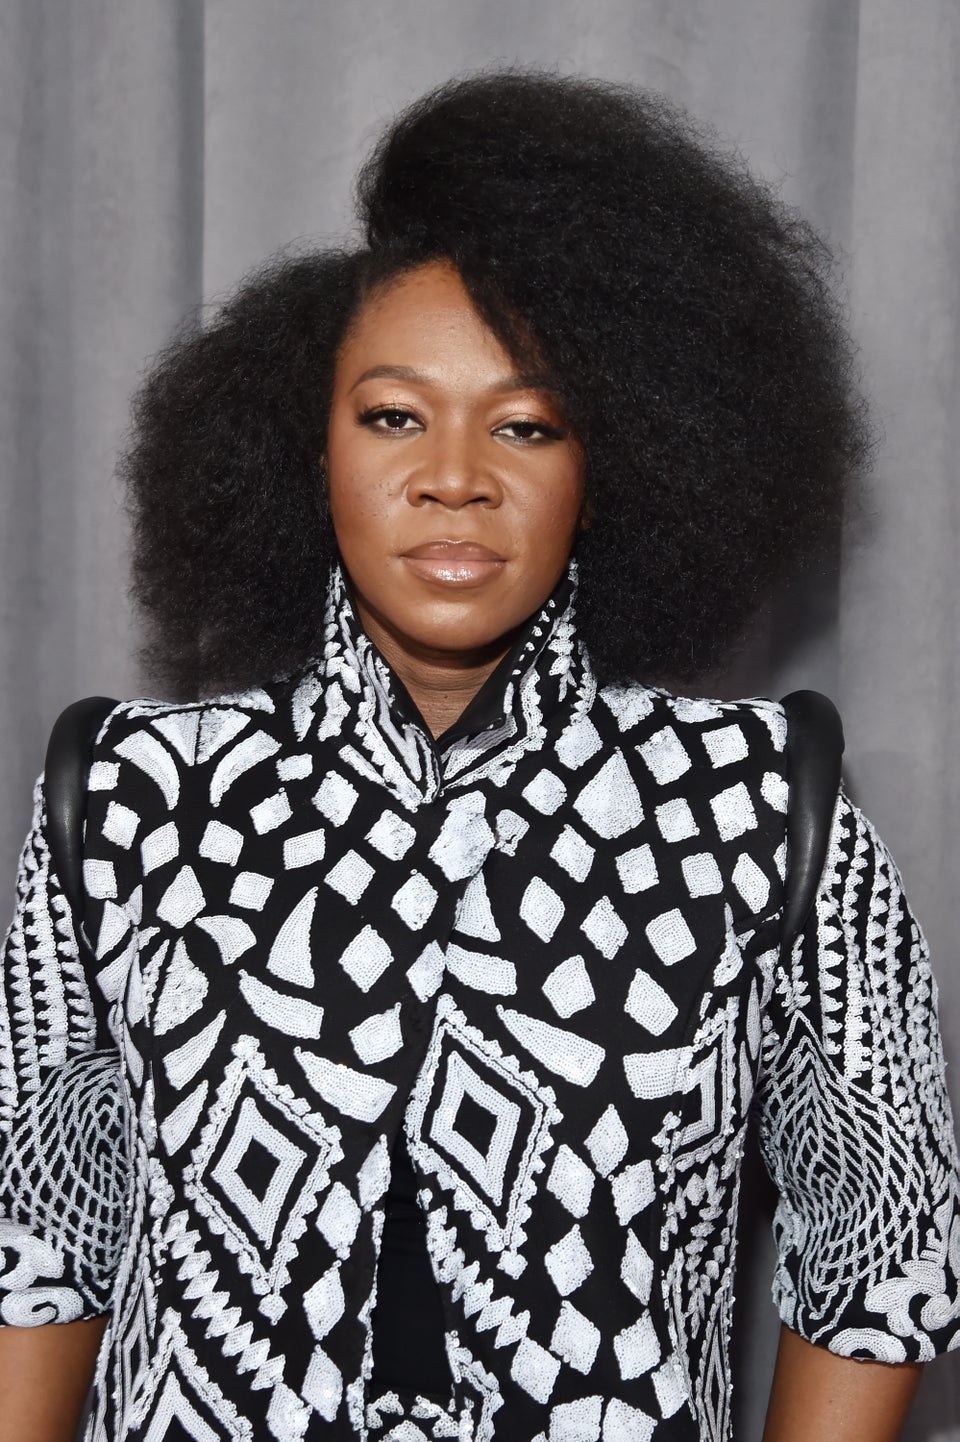 Did Jimmy Fallon And Justin Timberlake Steal India.Arie's Idea? She Thinks So